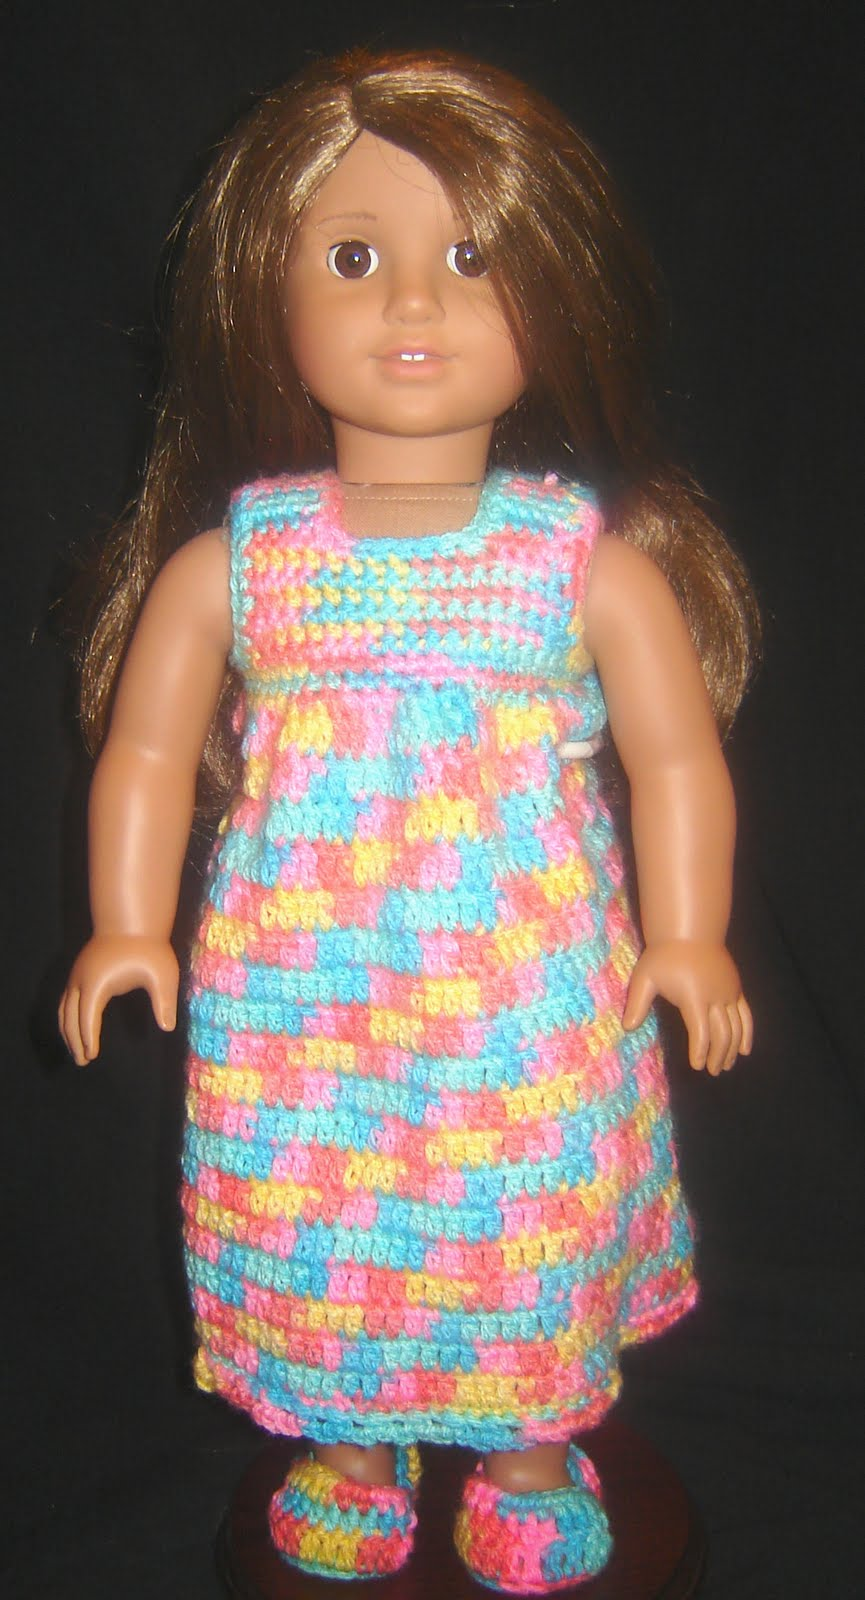 Crocheting Doll Clothes : Bizzy Crochet: Nightie, Robe & Slippers - 18 Doll Clothes Pattern